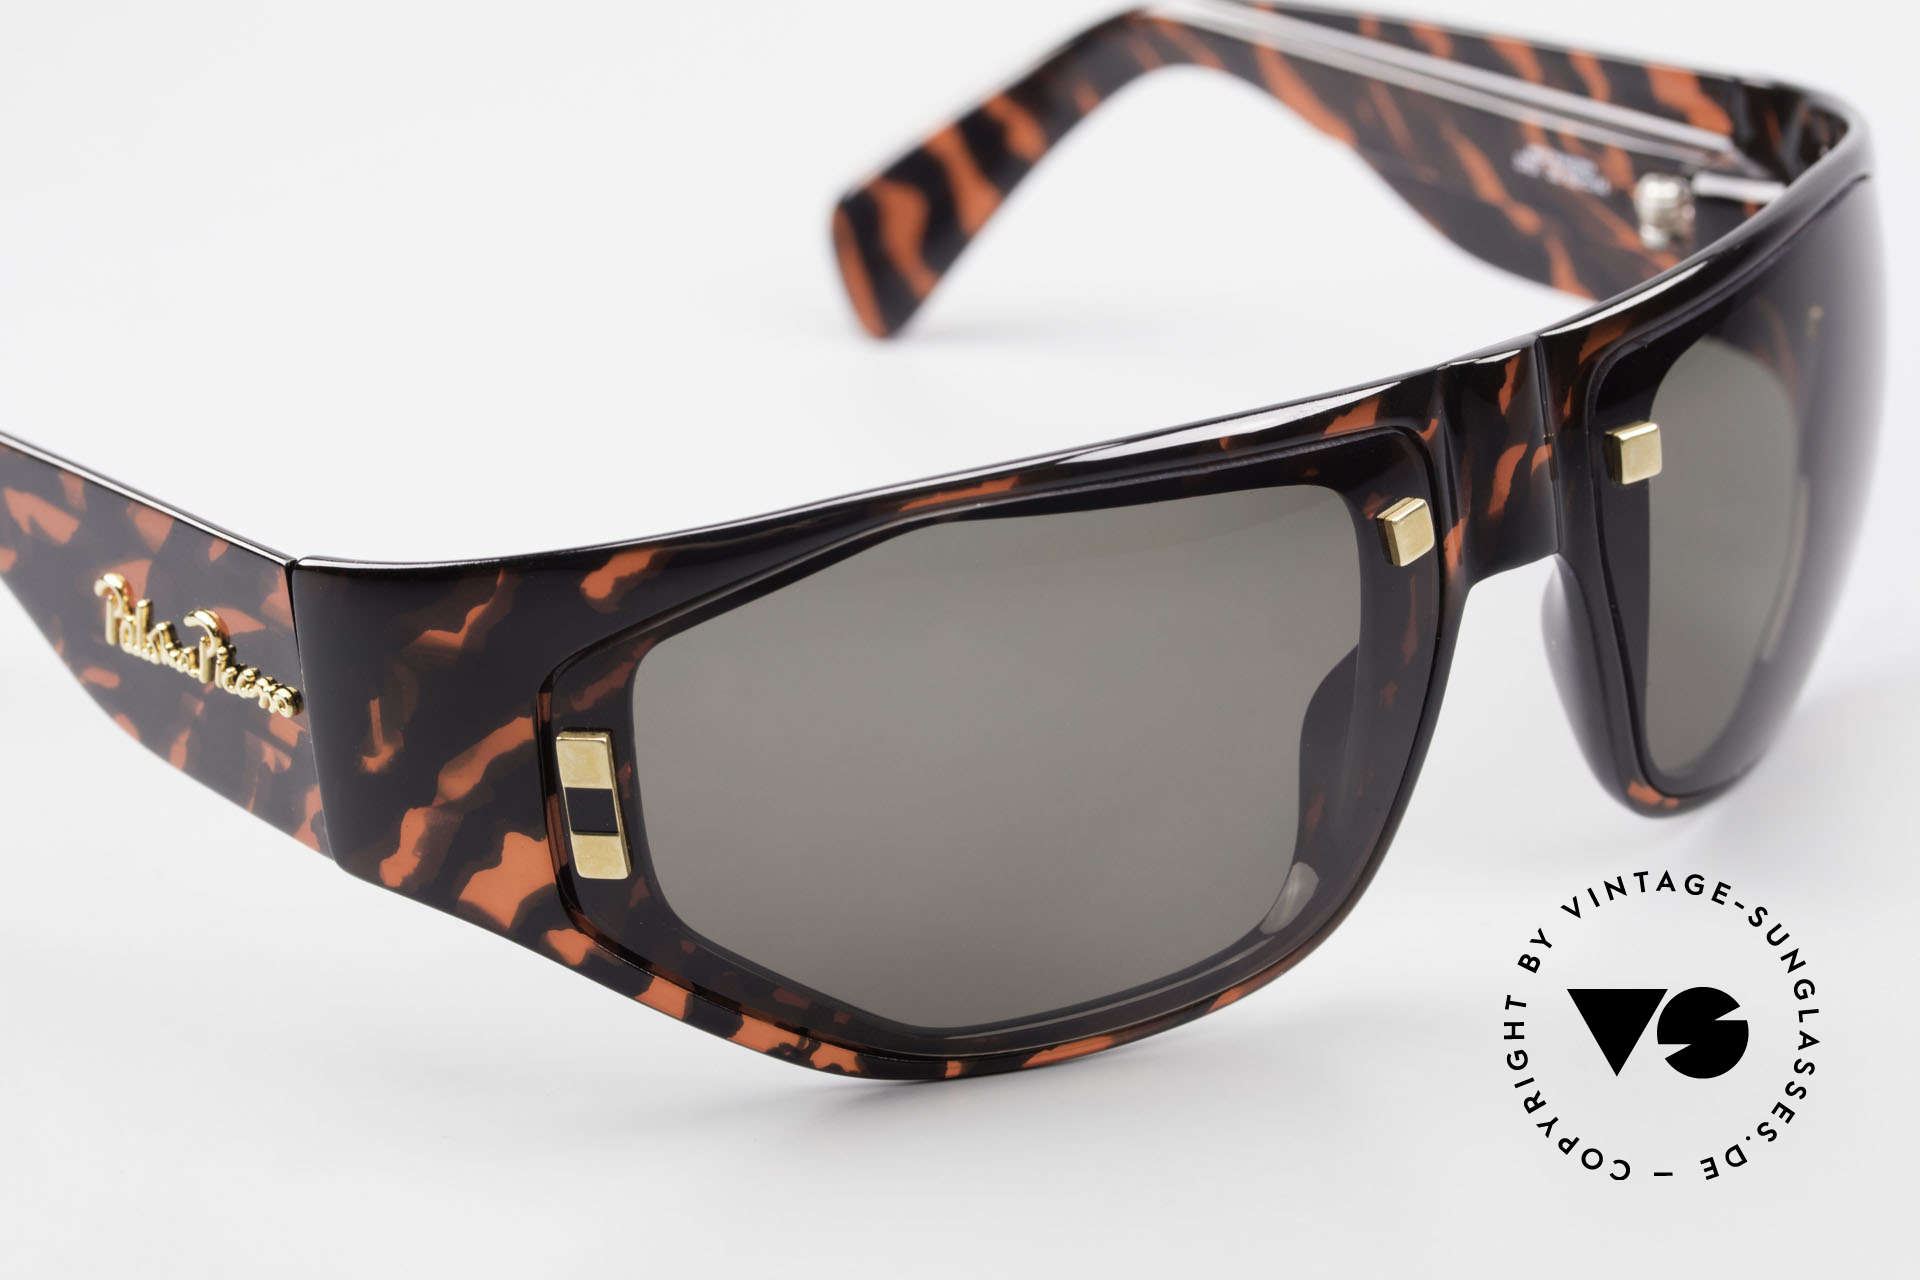 Paloma Picasso 3701 90's Wrap Sunglasses Ladies, wrap around shades: the frame wraps the face round, Made for Women